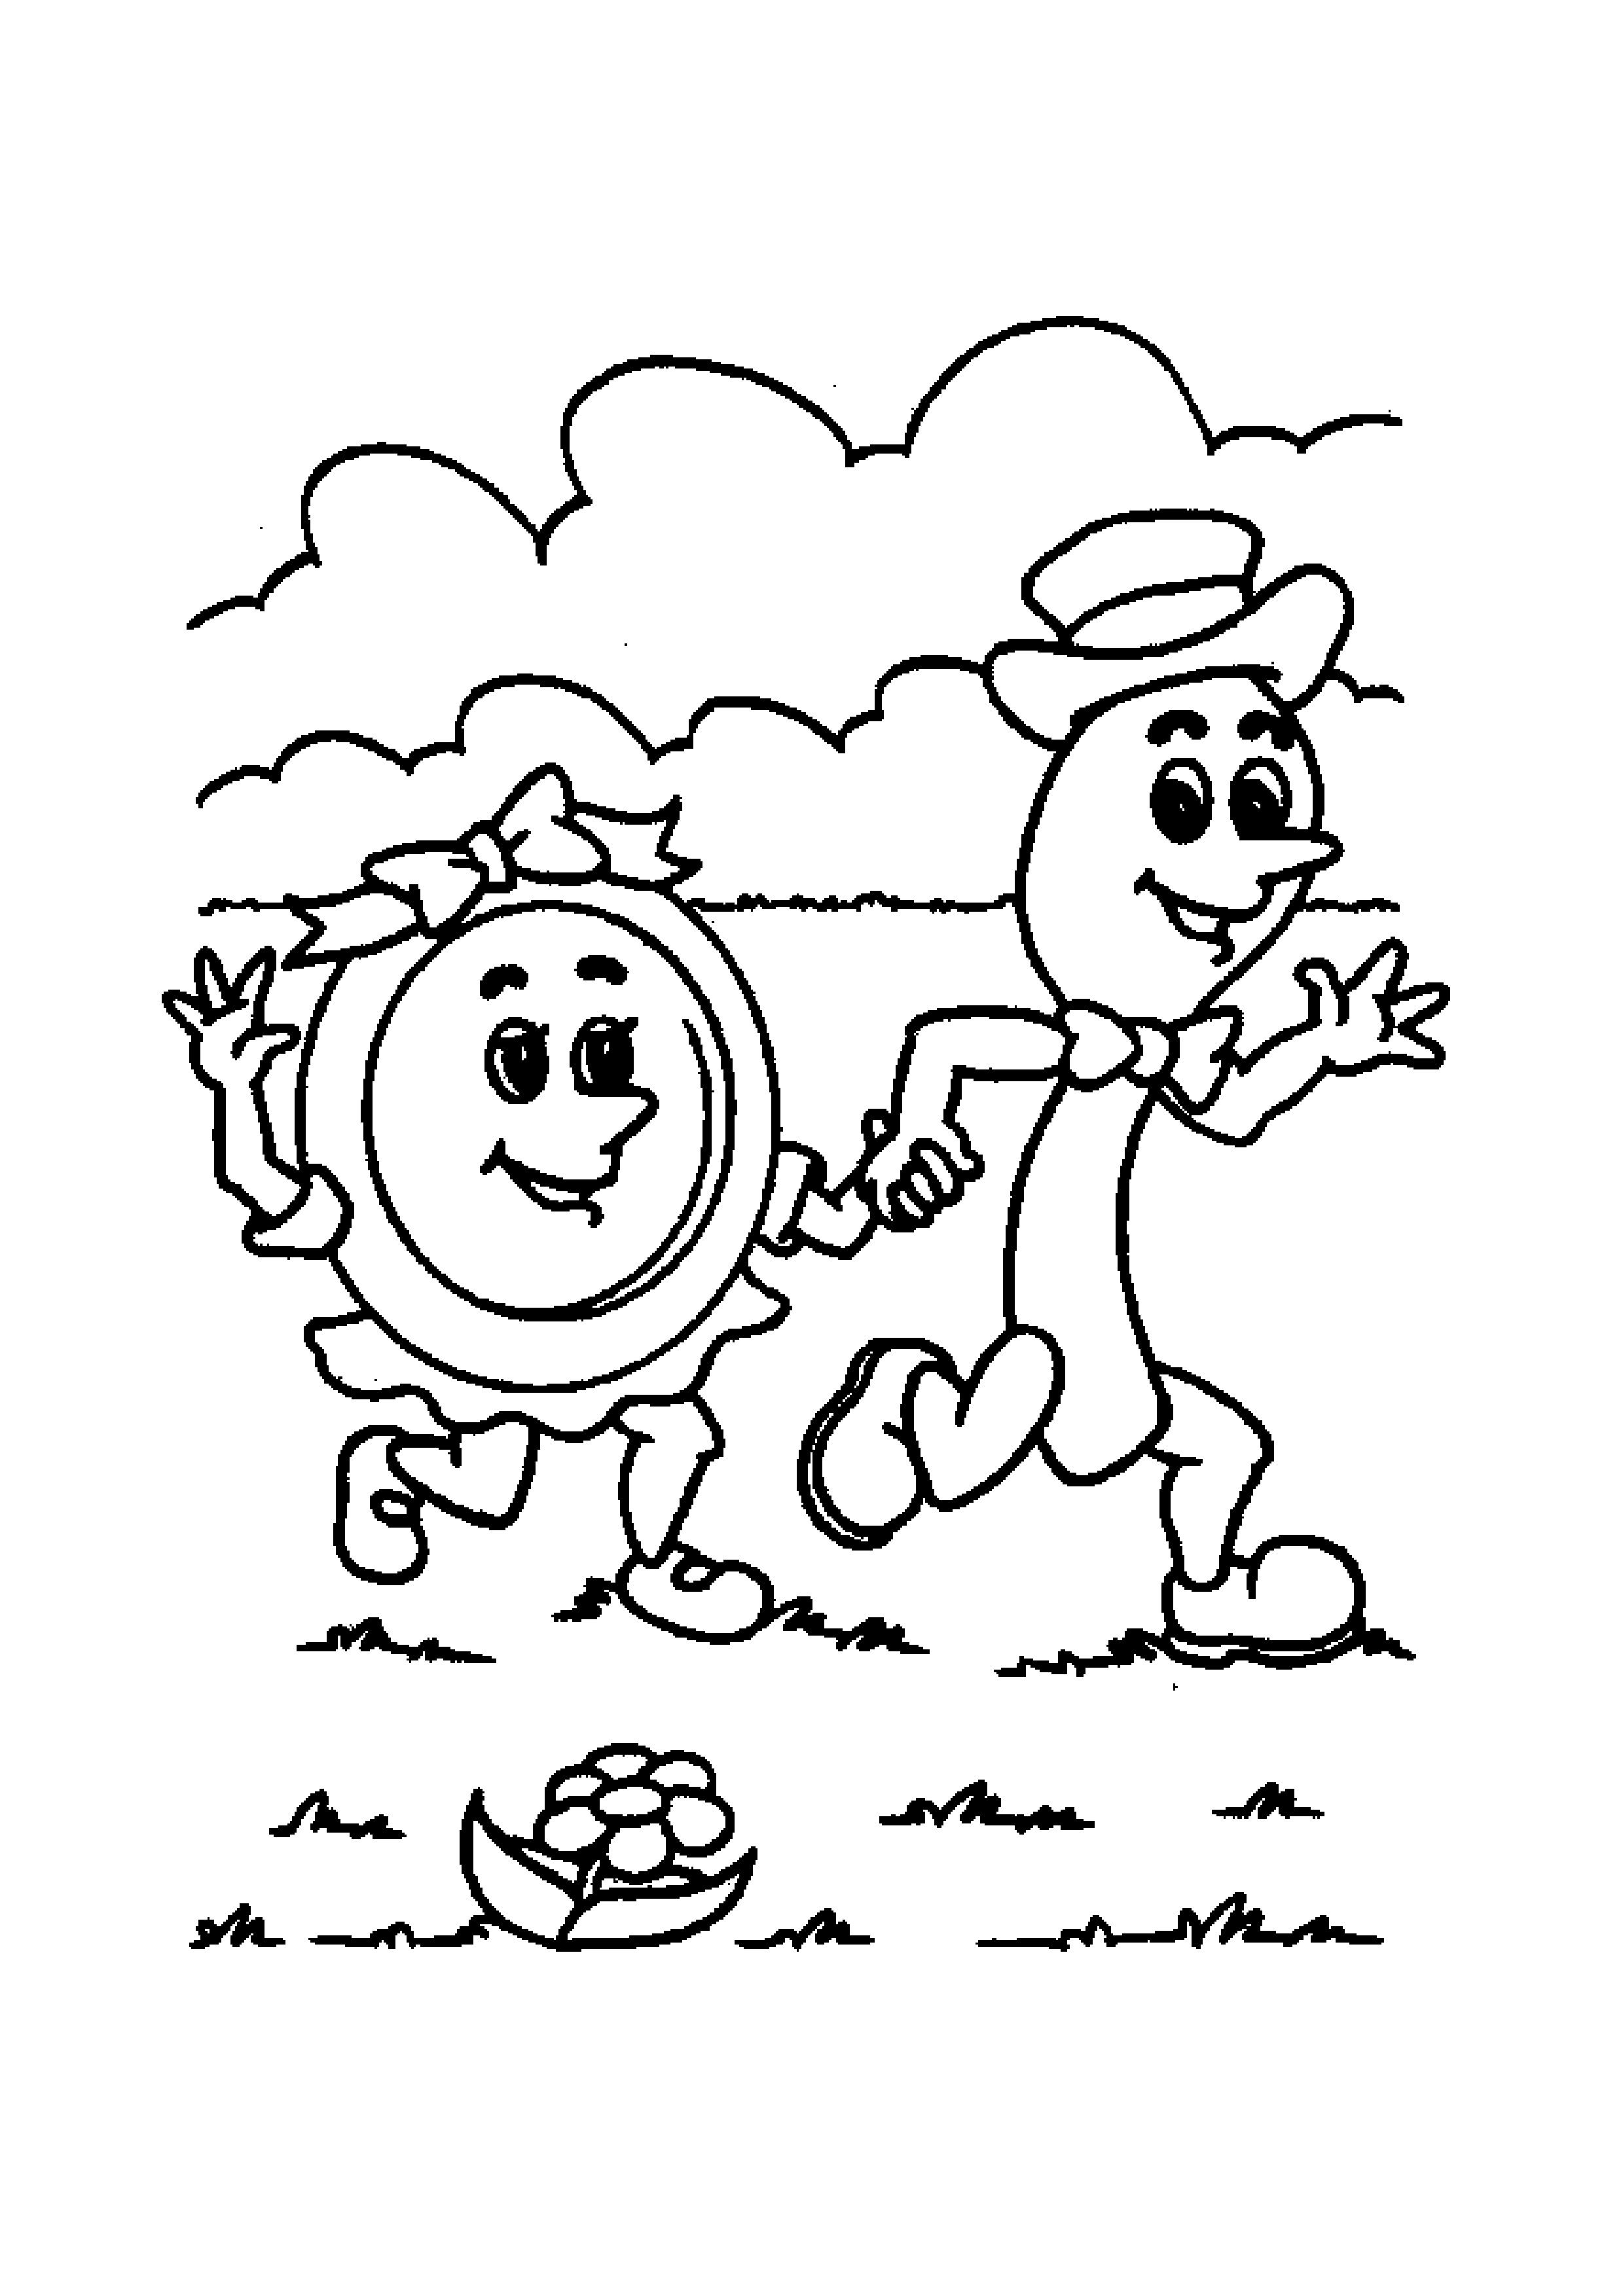 Nursery Rhymes Coloring Pages Coloring Pages Cool